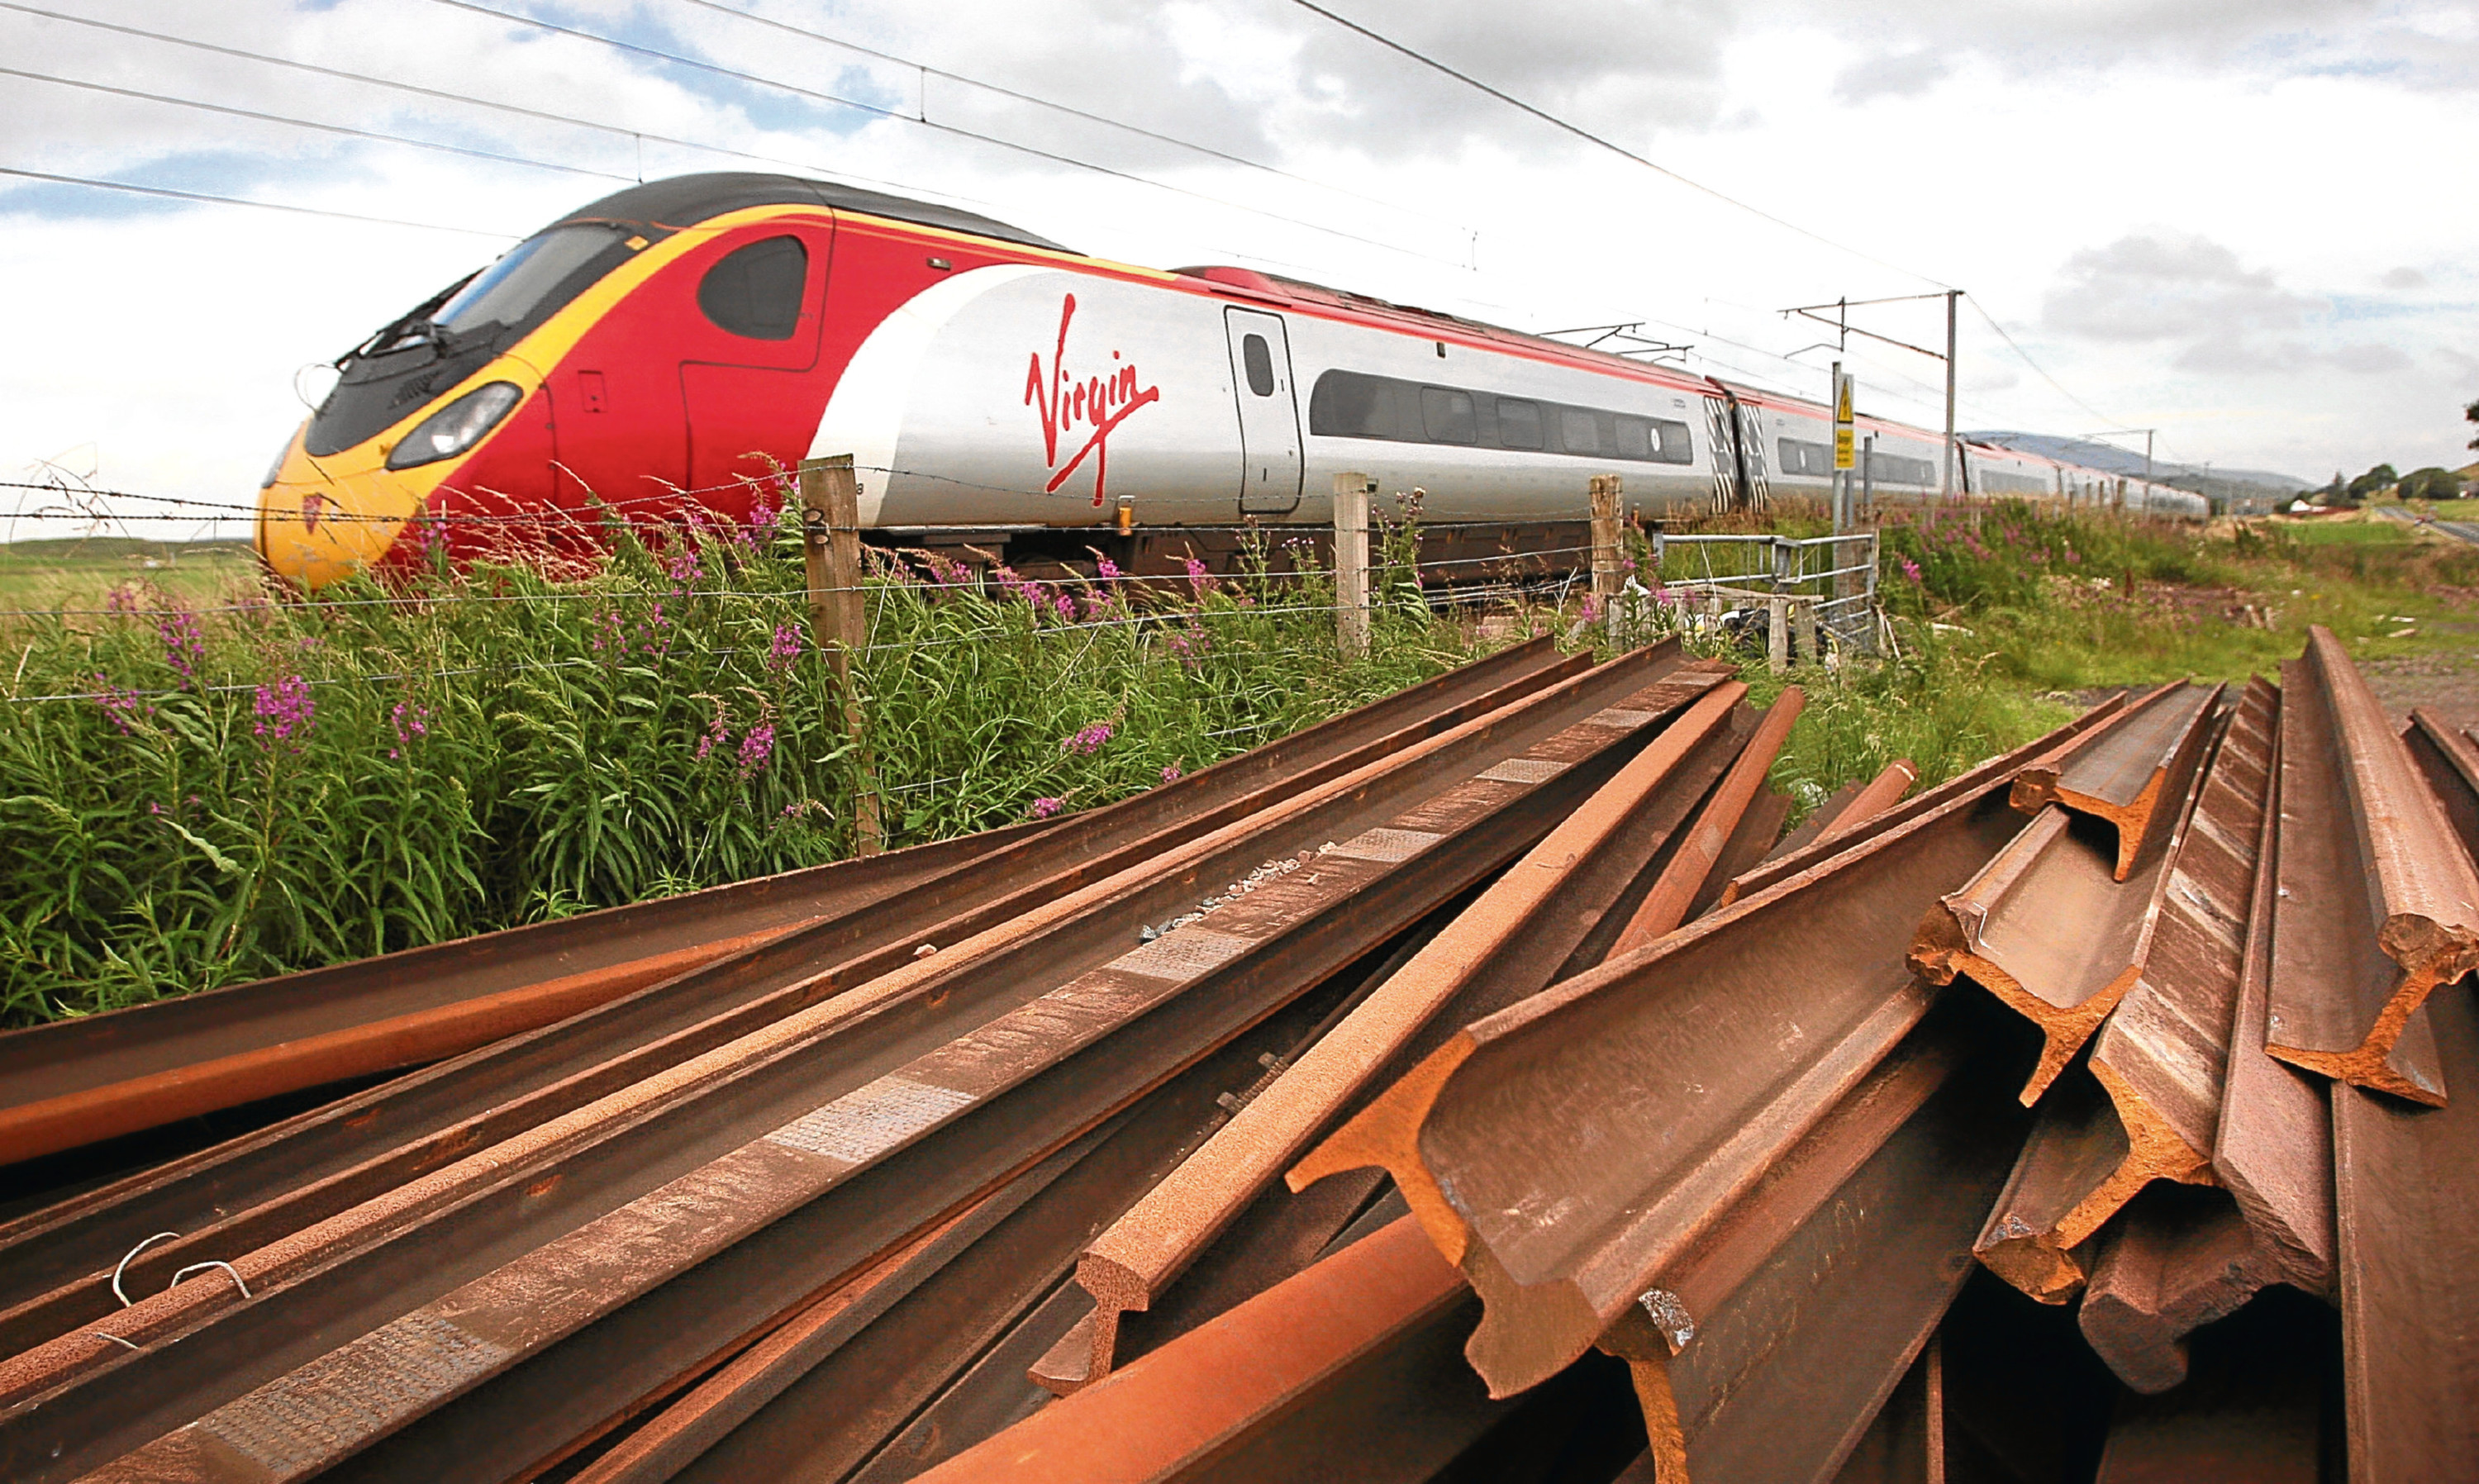 The West Coast rail frnachise is currently operated by a joint venture between Virgin Rail Group and Stagecoach